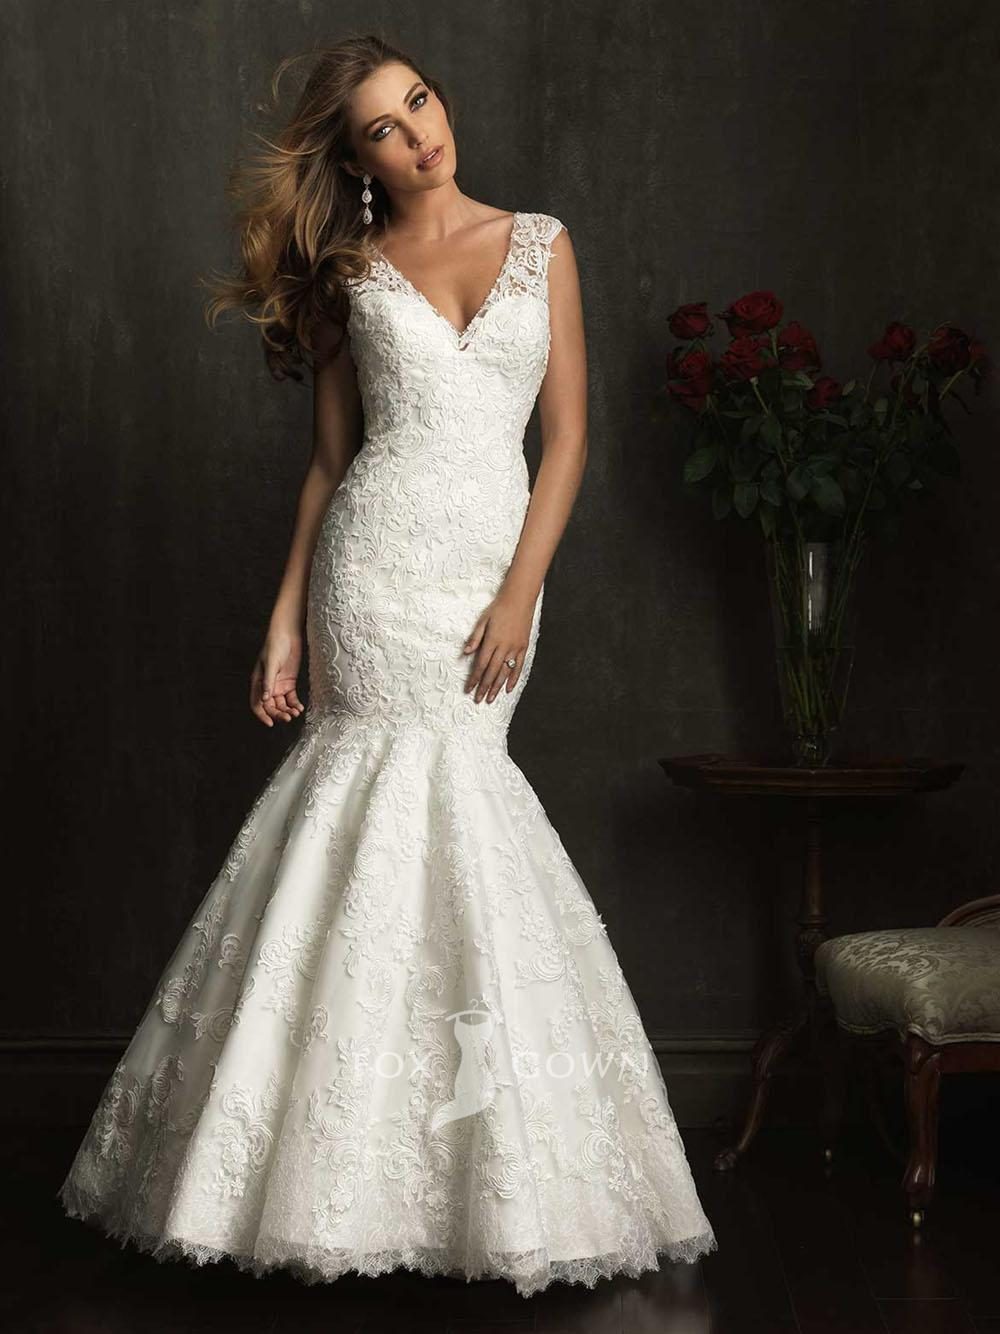 mermaid v-neckline wedding dress with lace sleeves